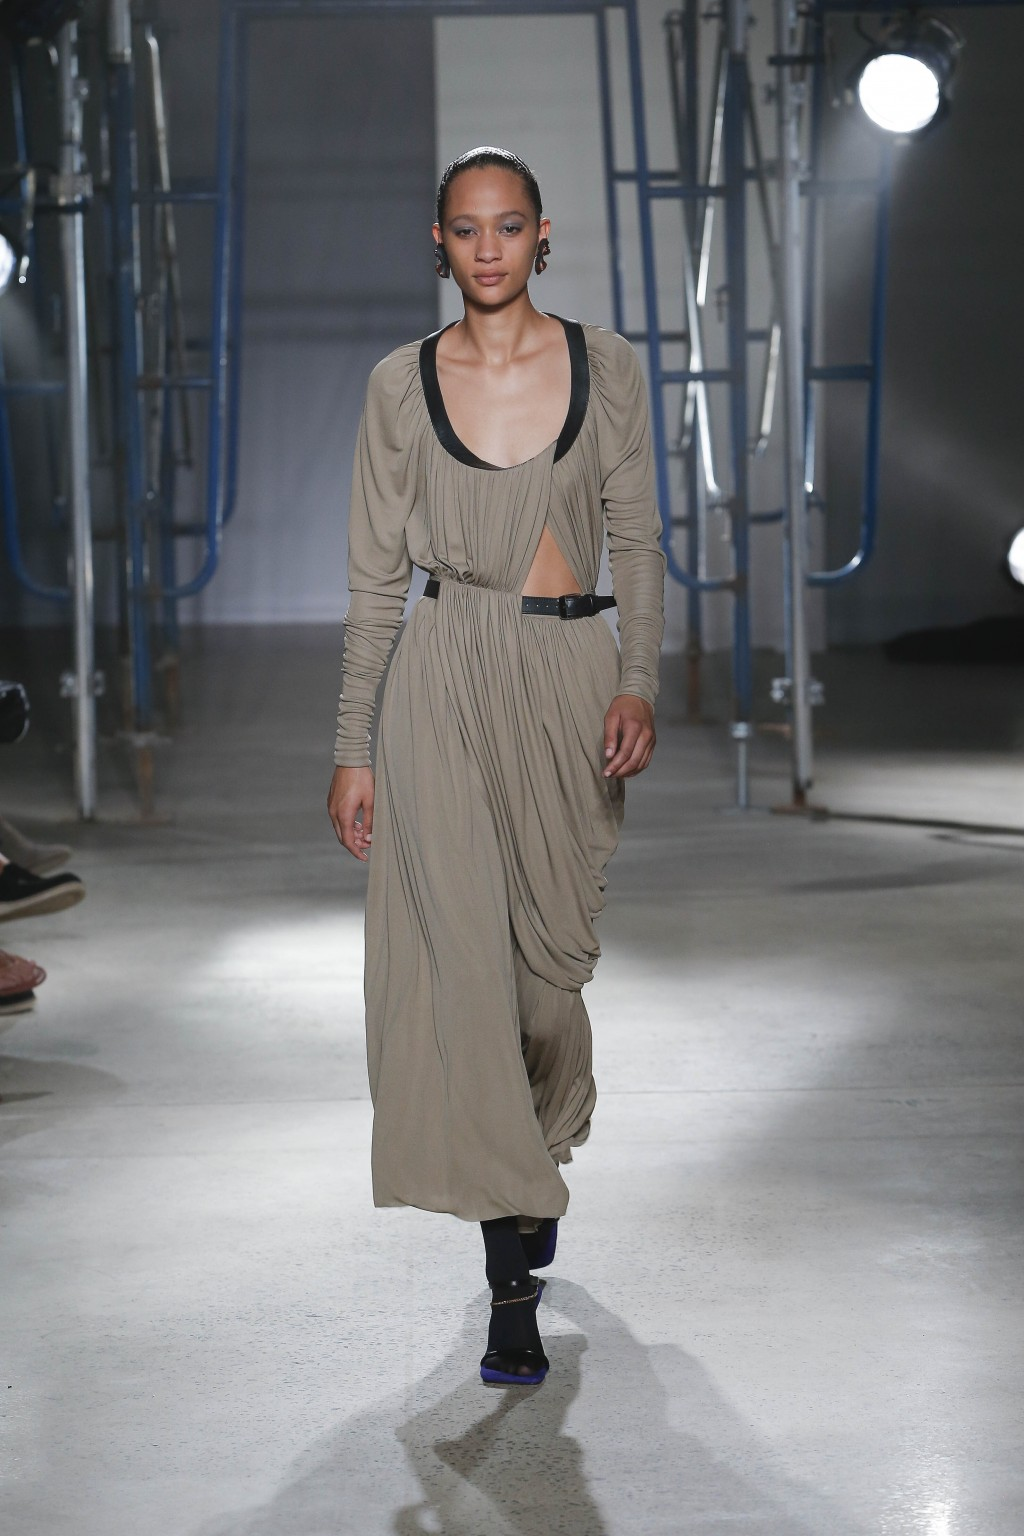 This Sept. 10, 2019 photo released by Proenza Schouler shows a model wearing clothing from their Spring/Summer 2020 collection during Fashion Week in